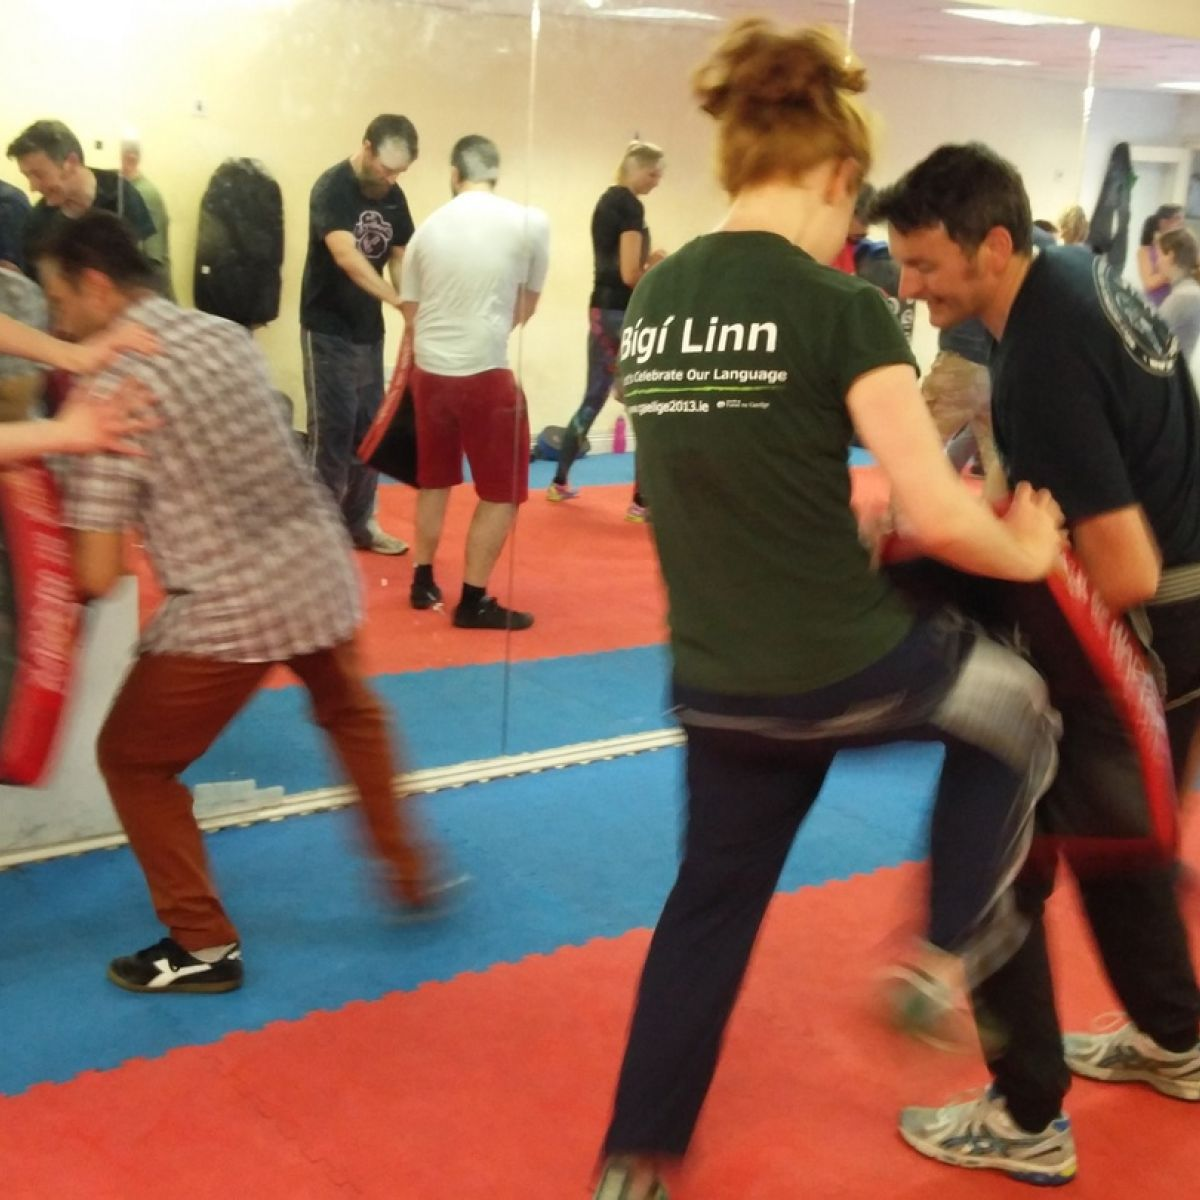 Grab his finger and snap it': attending a Krav Maga class